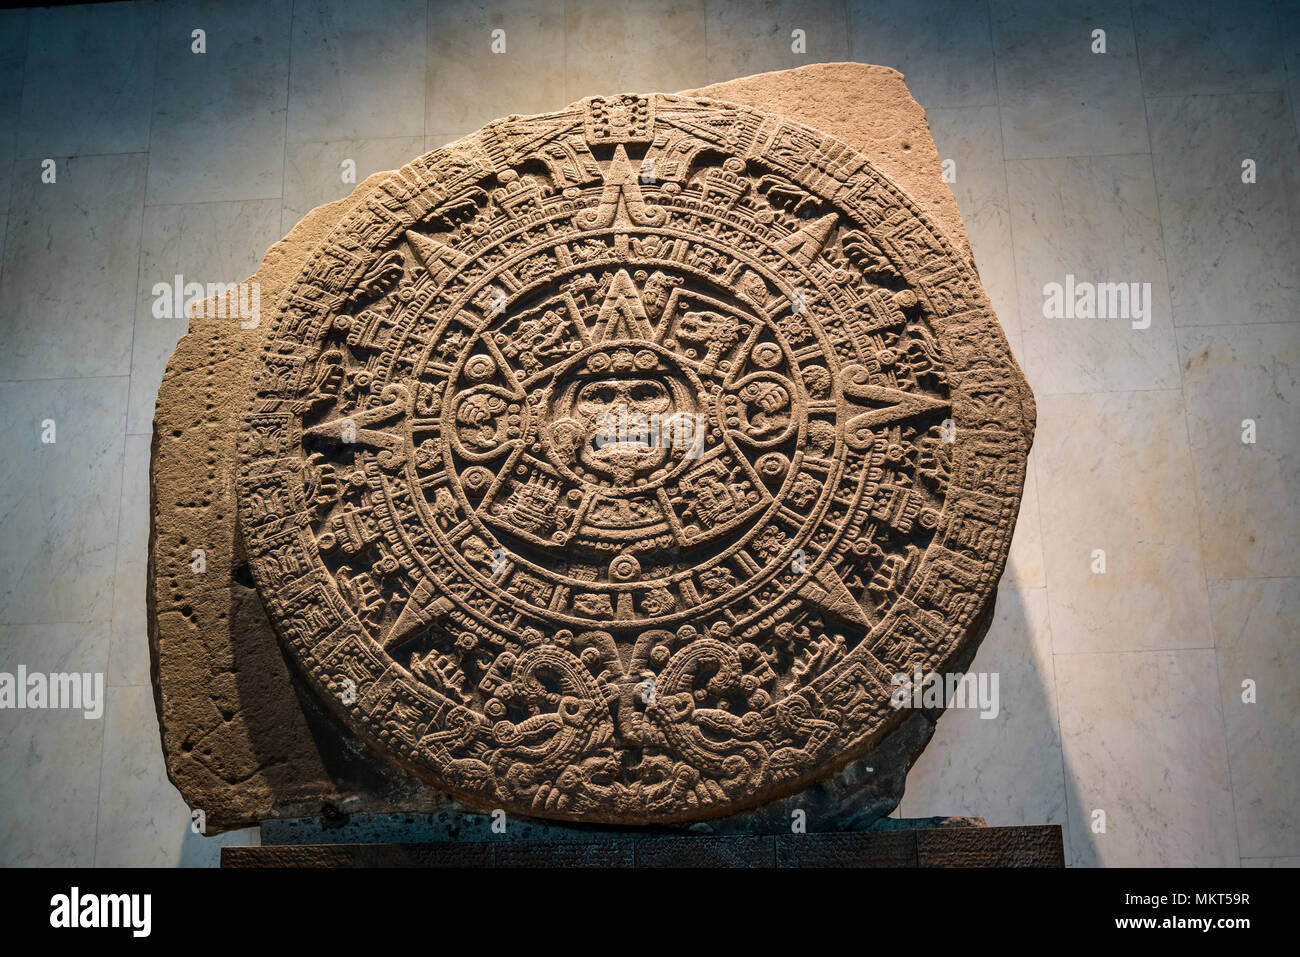 Aztec Room, Sun Stone or Aztec calendar stone, a late post-classic Mexica sculpture, National Museum of Anthropology, Museo Nacional de Antropología,  - Stock Image